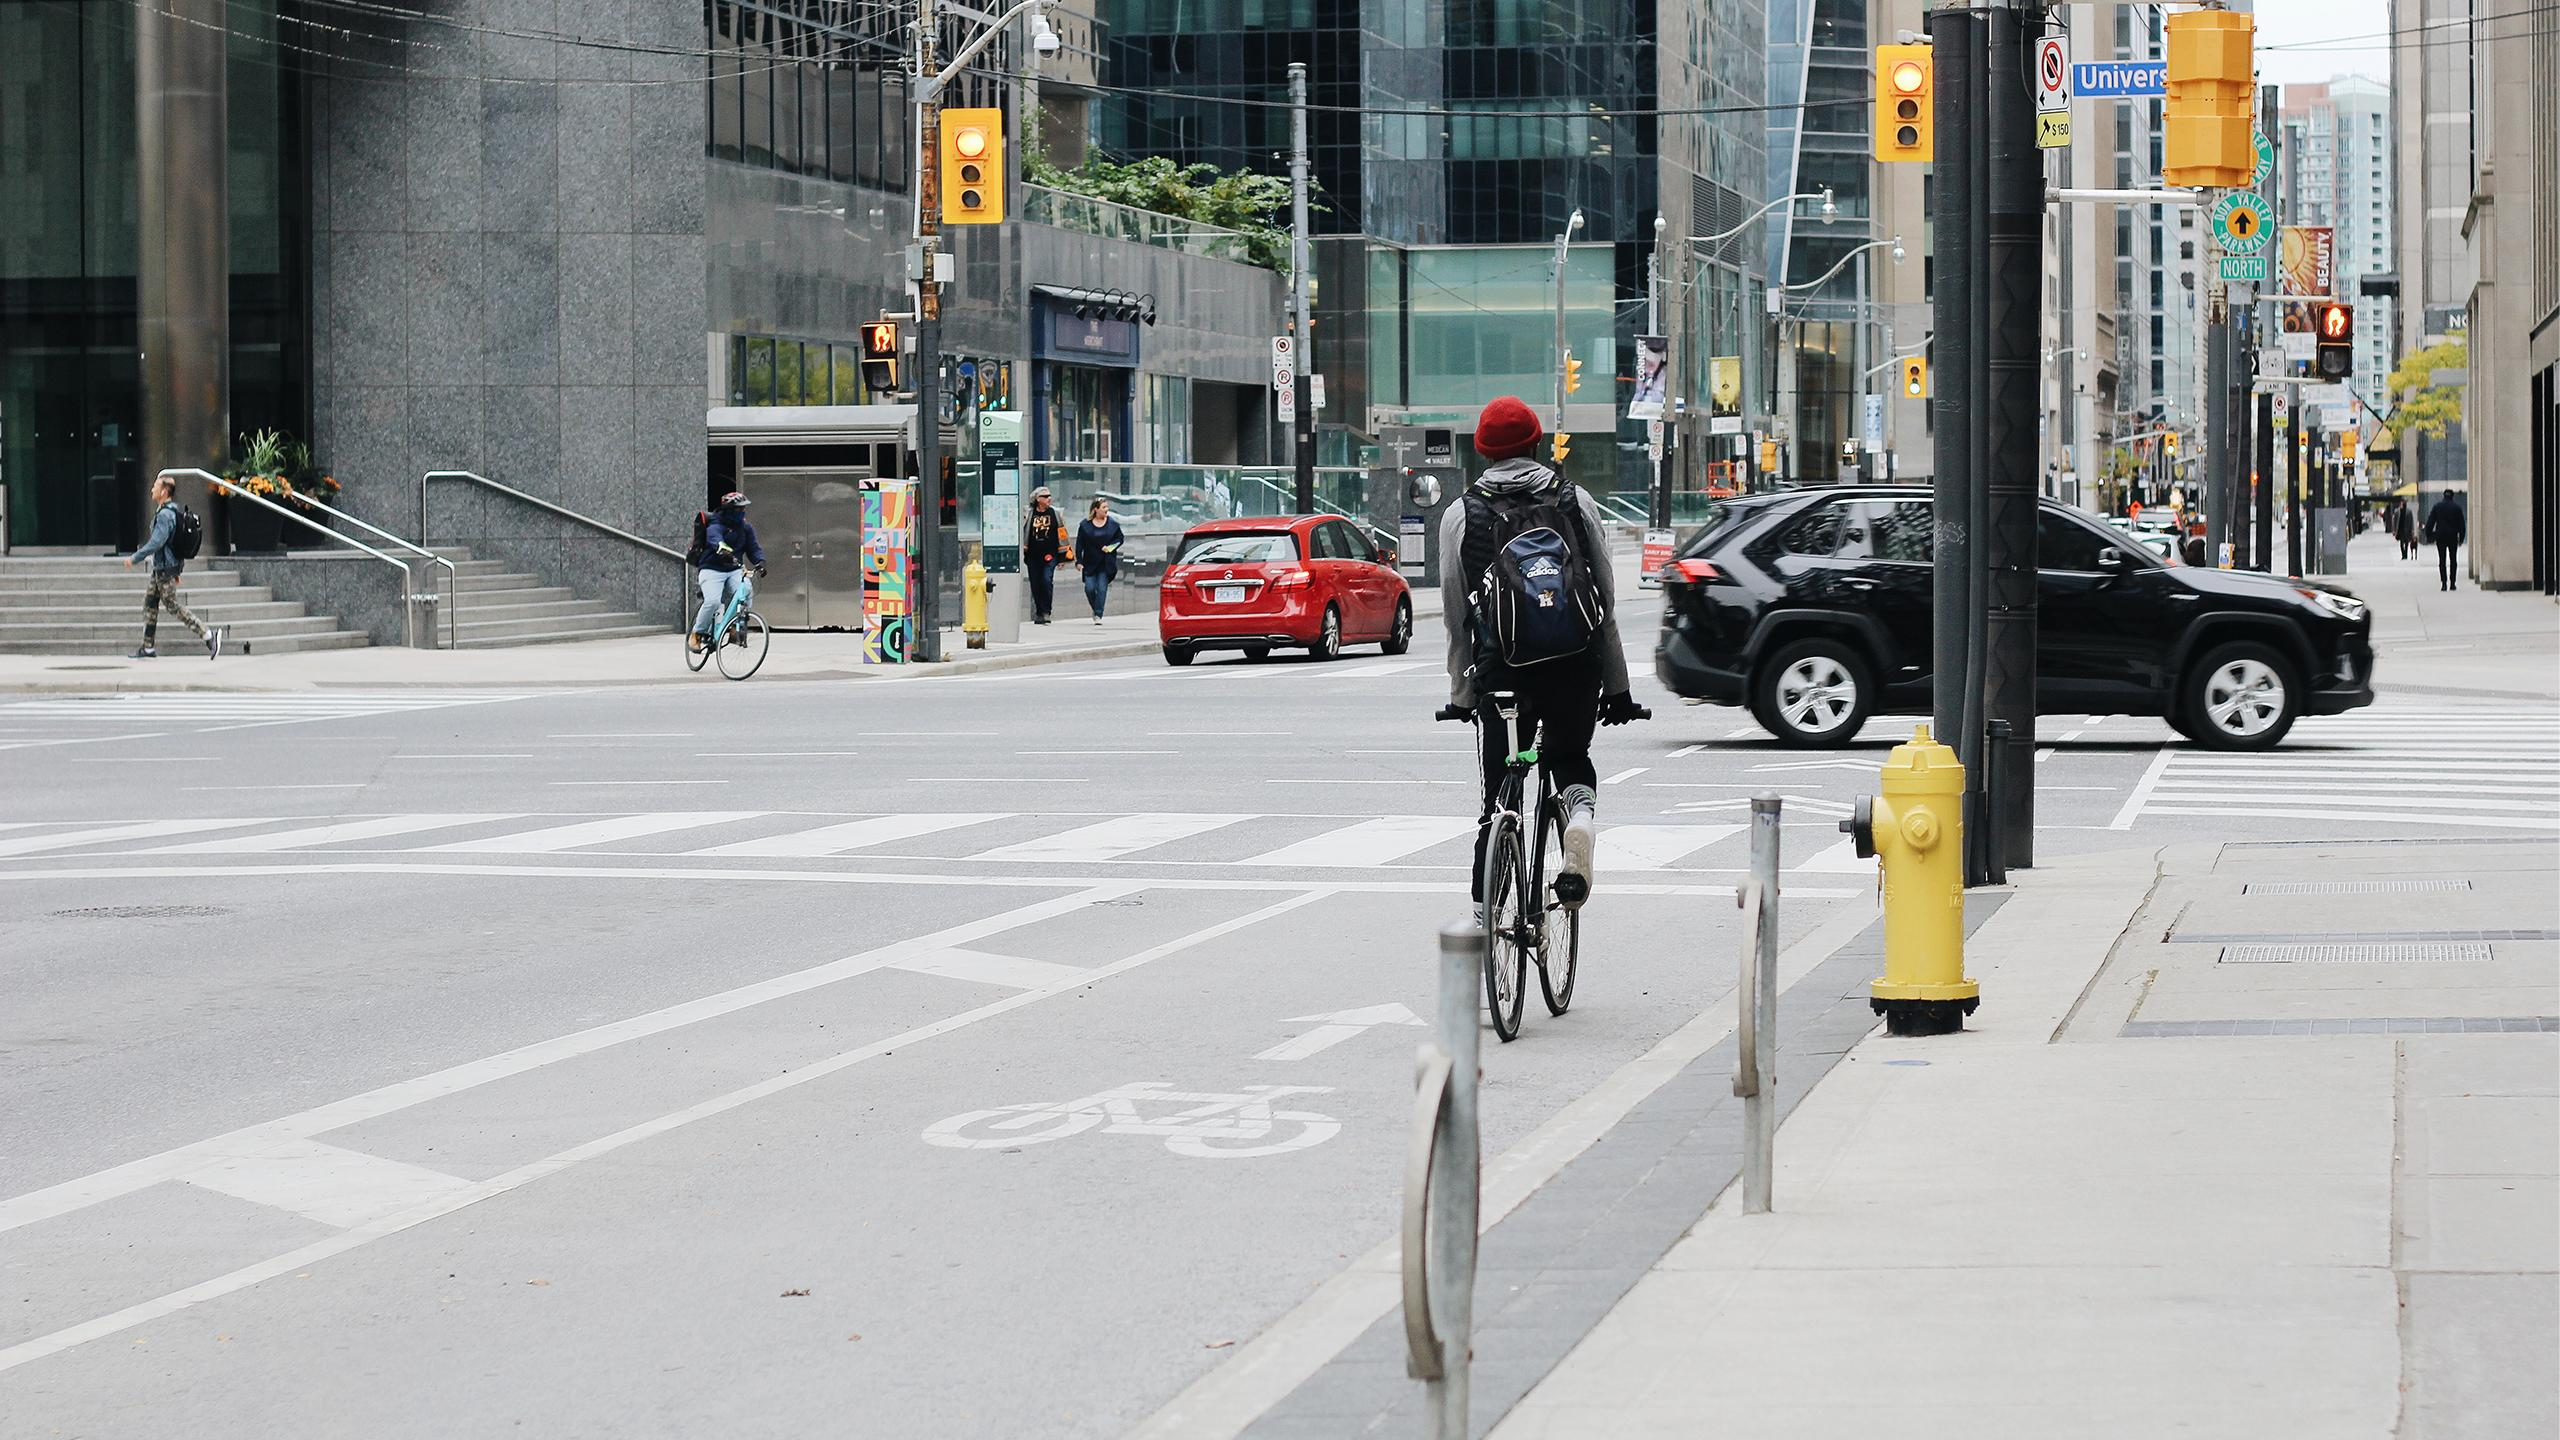 Person riding a bicycle in a bike lane in downtown Toronto.